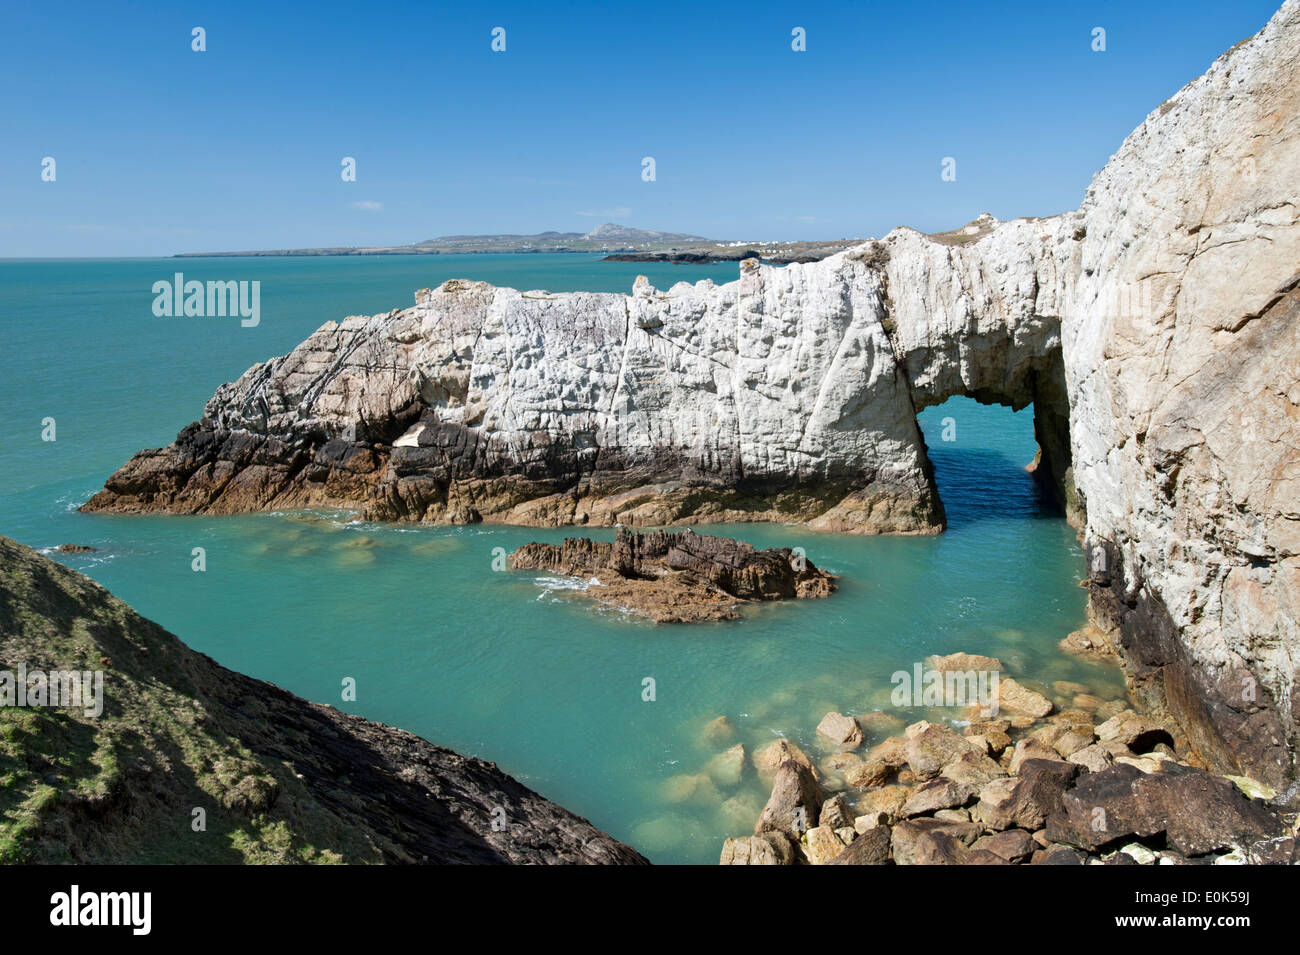 Bwa Gwyn white natural rock sea arch on coast, near Rhoscolyn, Anglesey, North Wales, UK - Stock Image